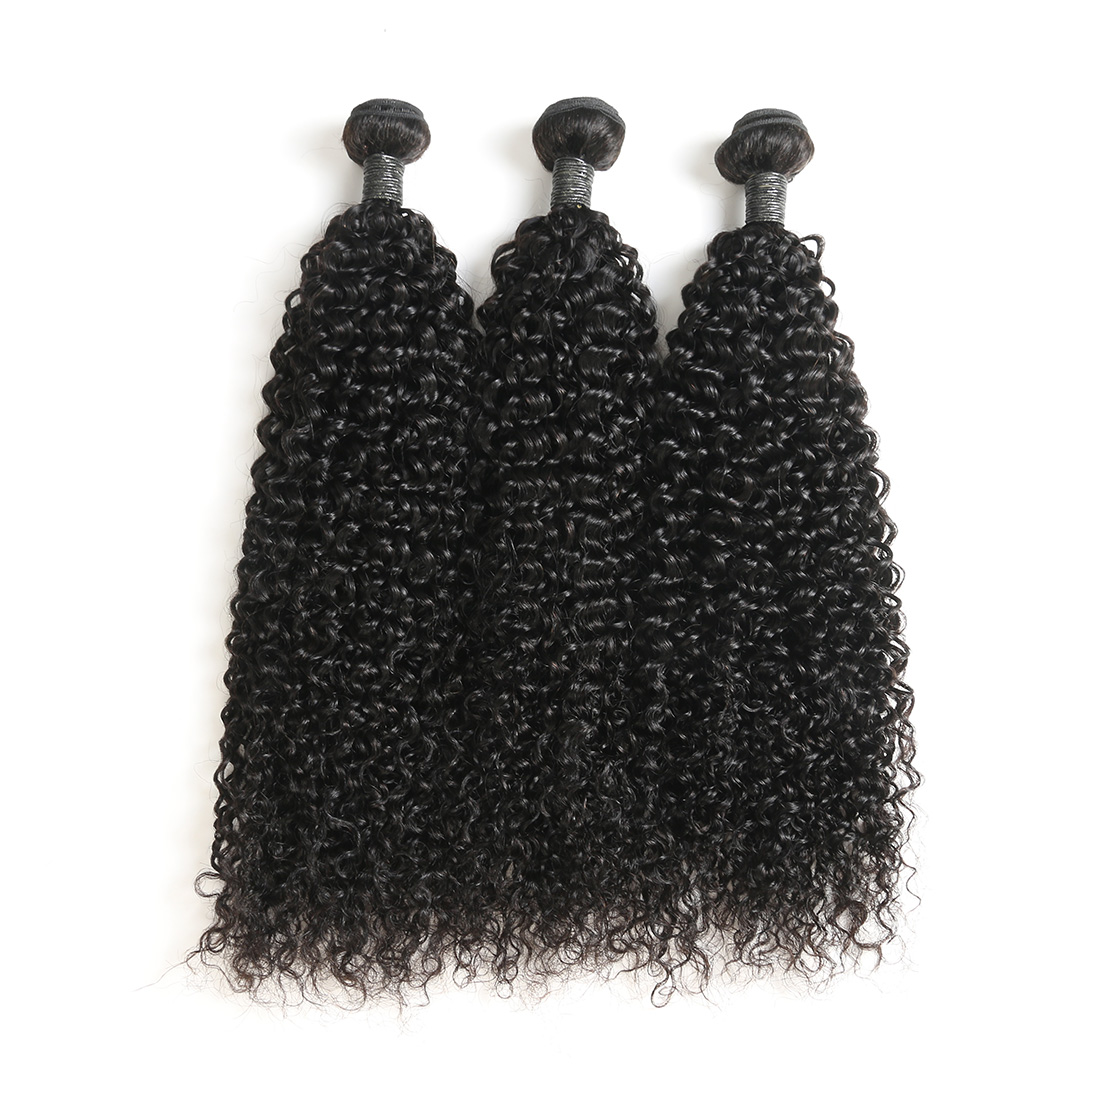 9A Indian Jerry Curly Human Virgin Hair Weave 3 Bundles With Lace Closure